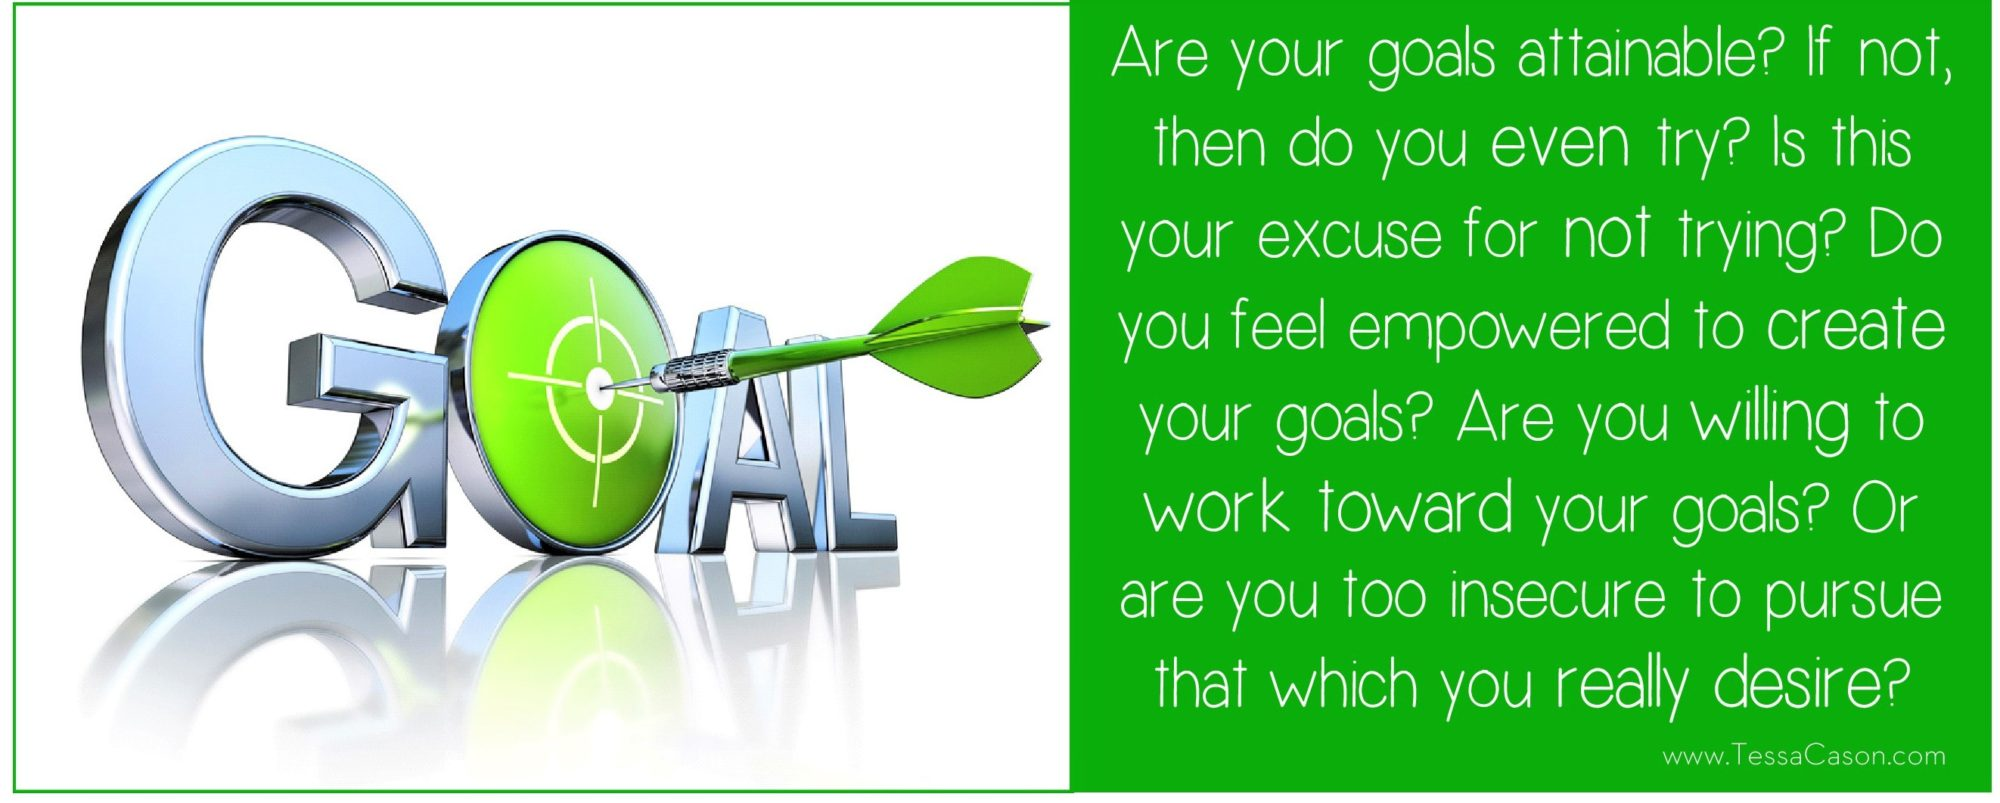 Are your goals attainable question